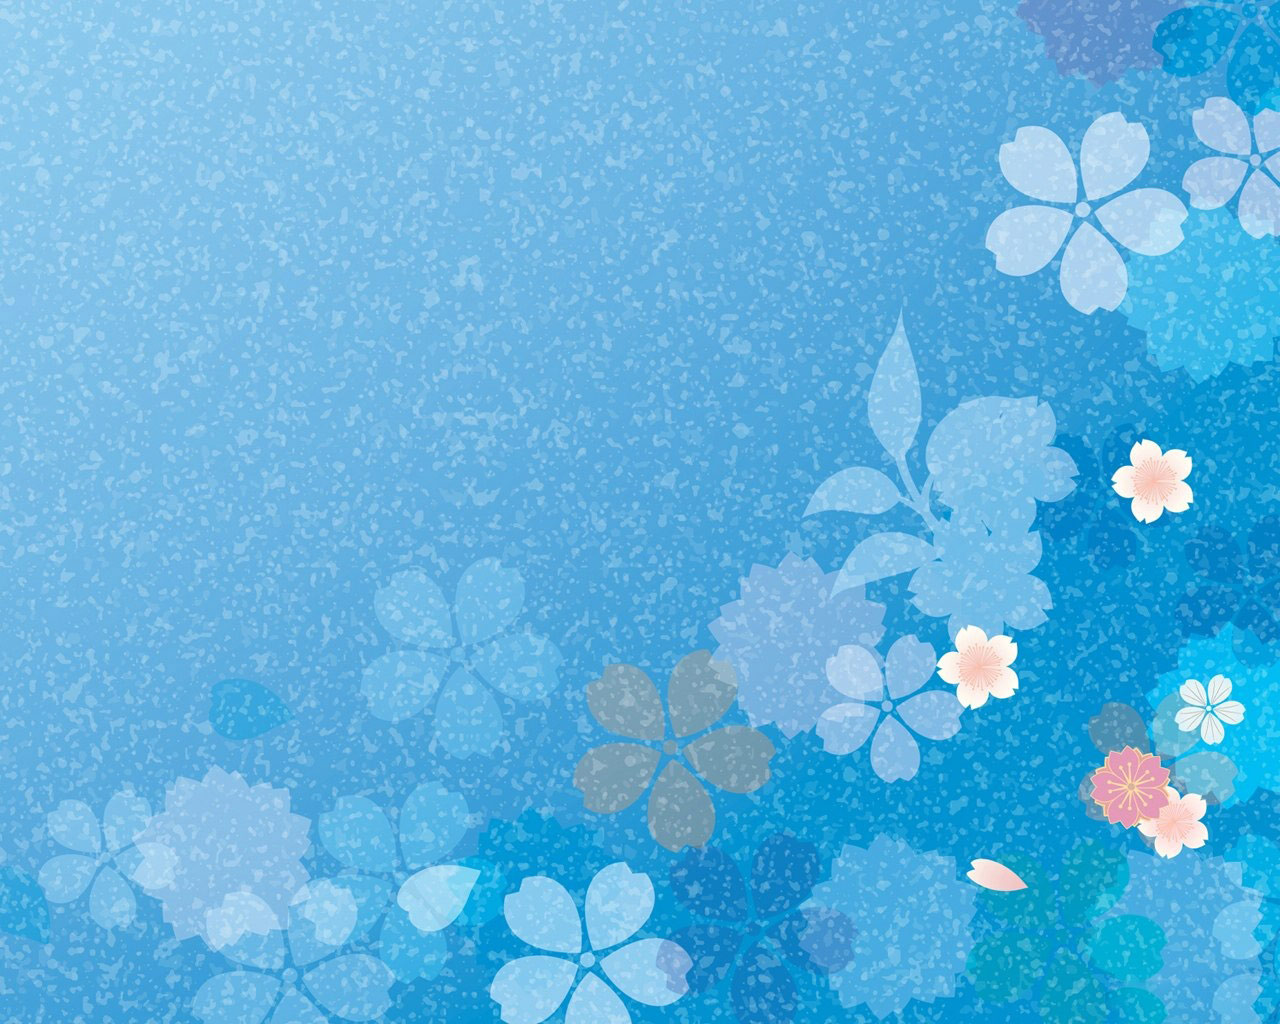 77+] Themes For Backgrounds on WallpaperSafari